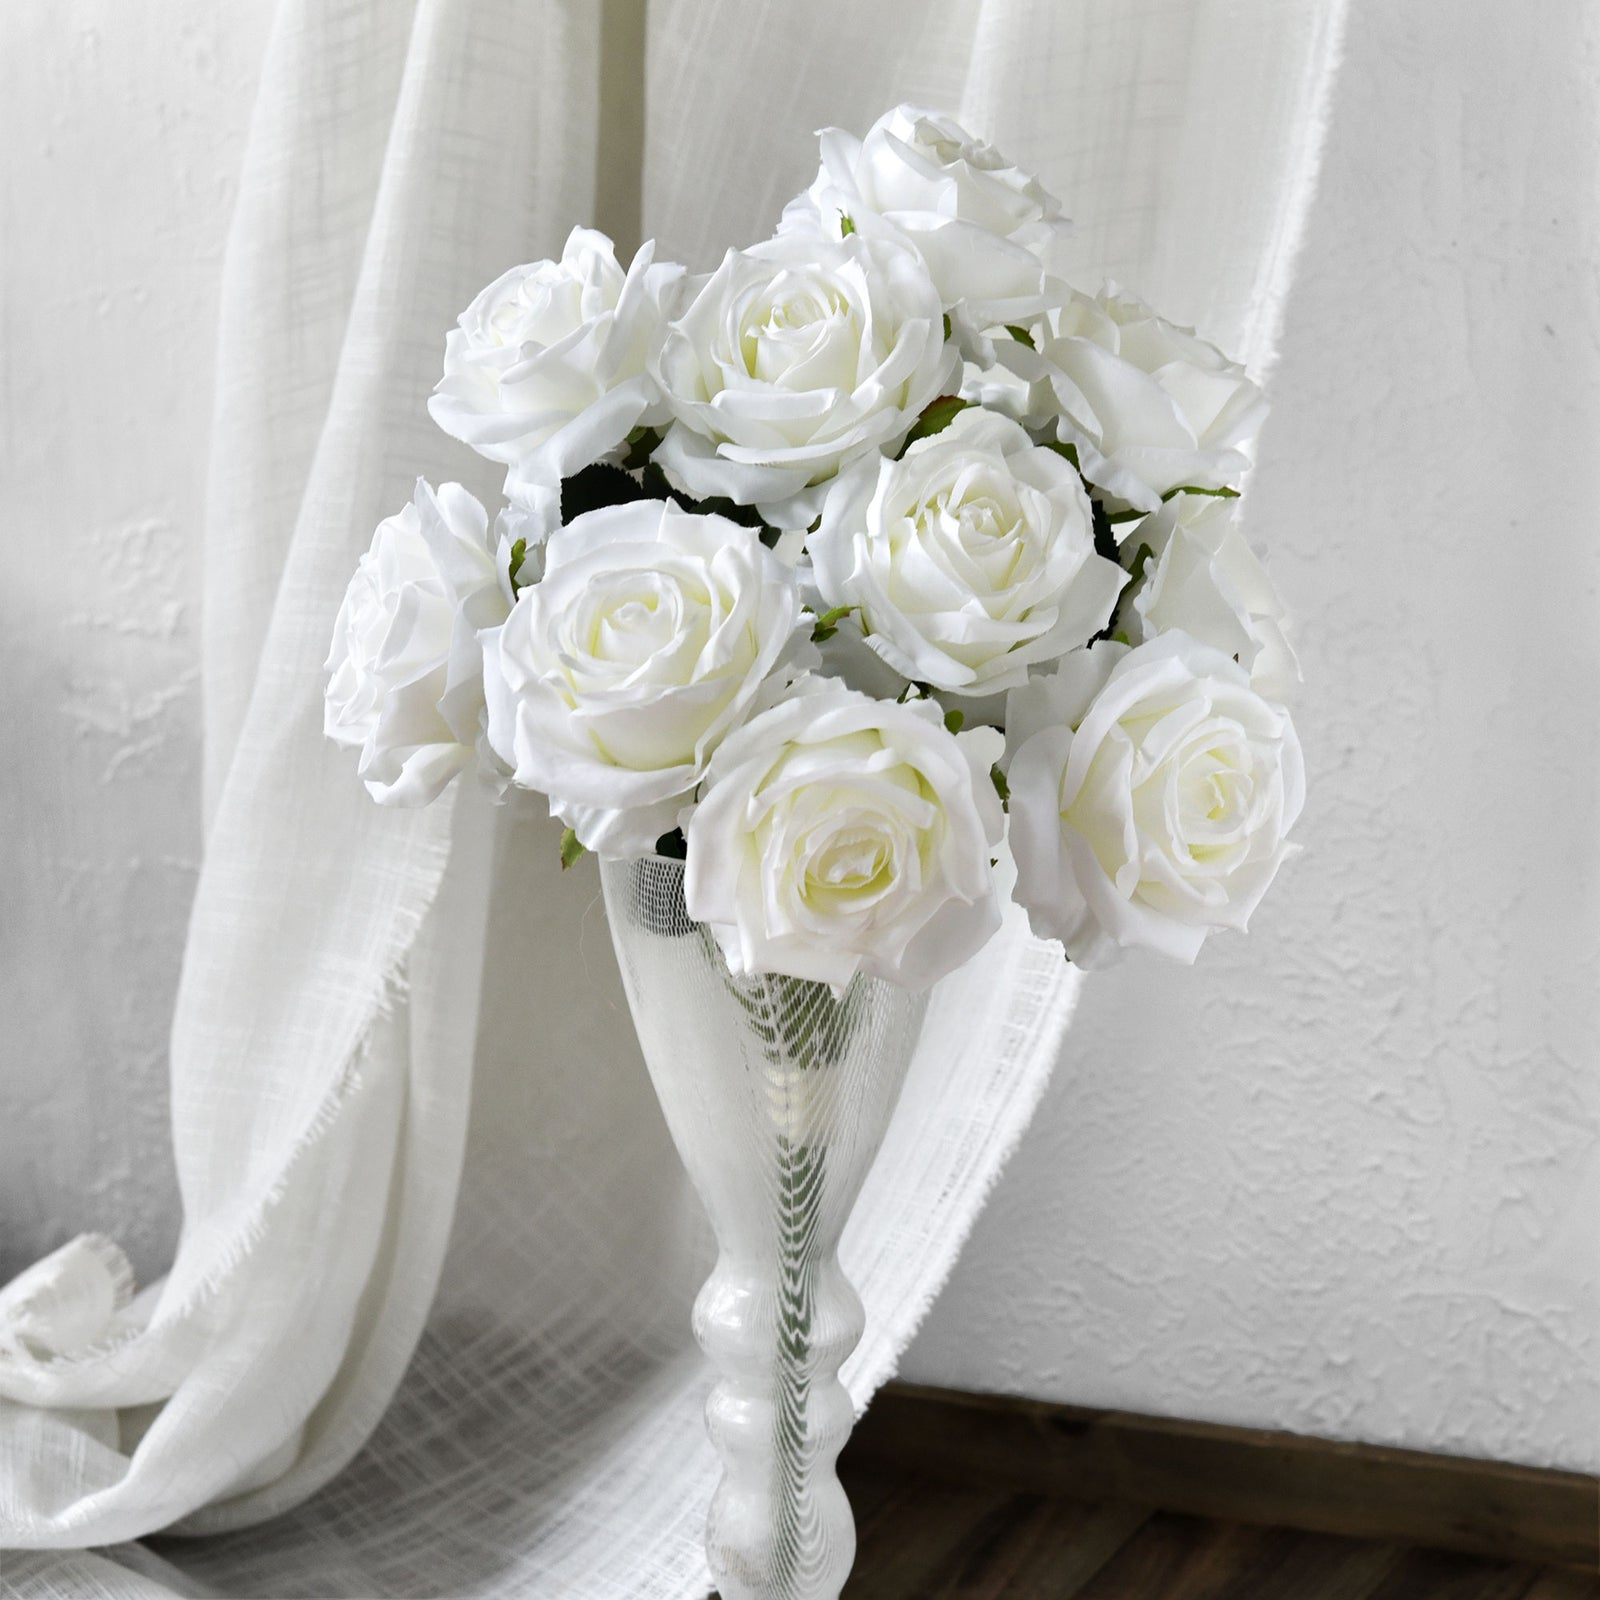 1 Bundle Full Bloom Silk White Roses Artificial Flowers, Home Décor, Wedding, Bridal FiveSeasonStuff